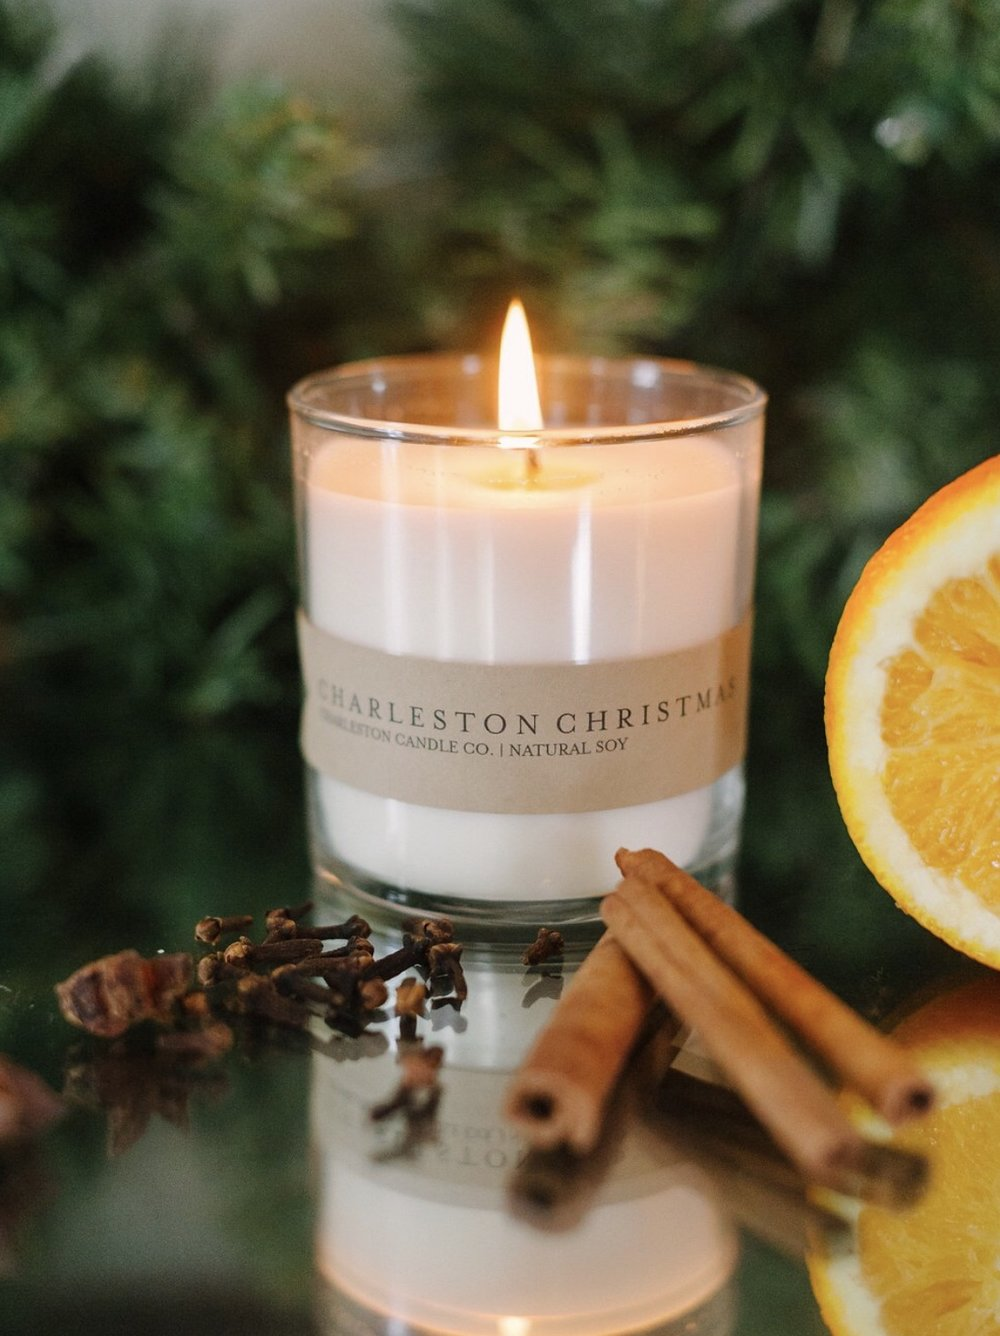 A candle from Charleston Candle Co